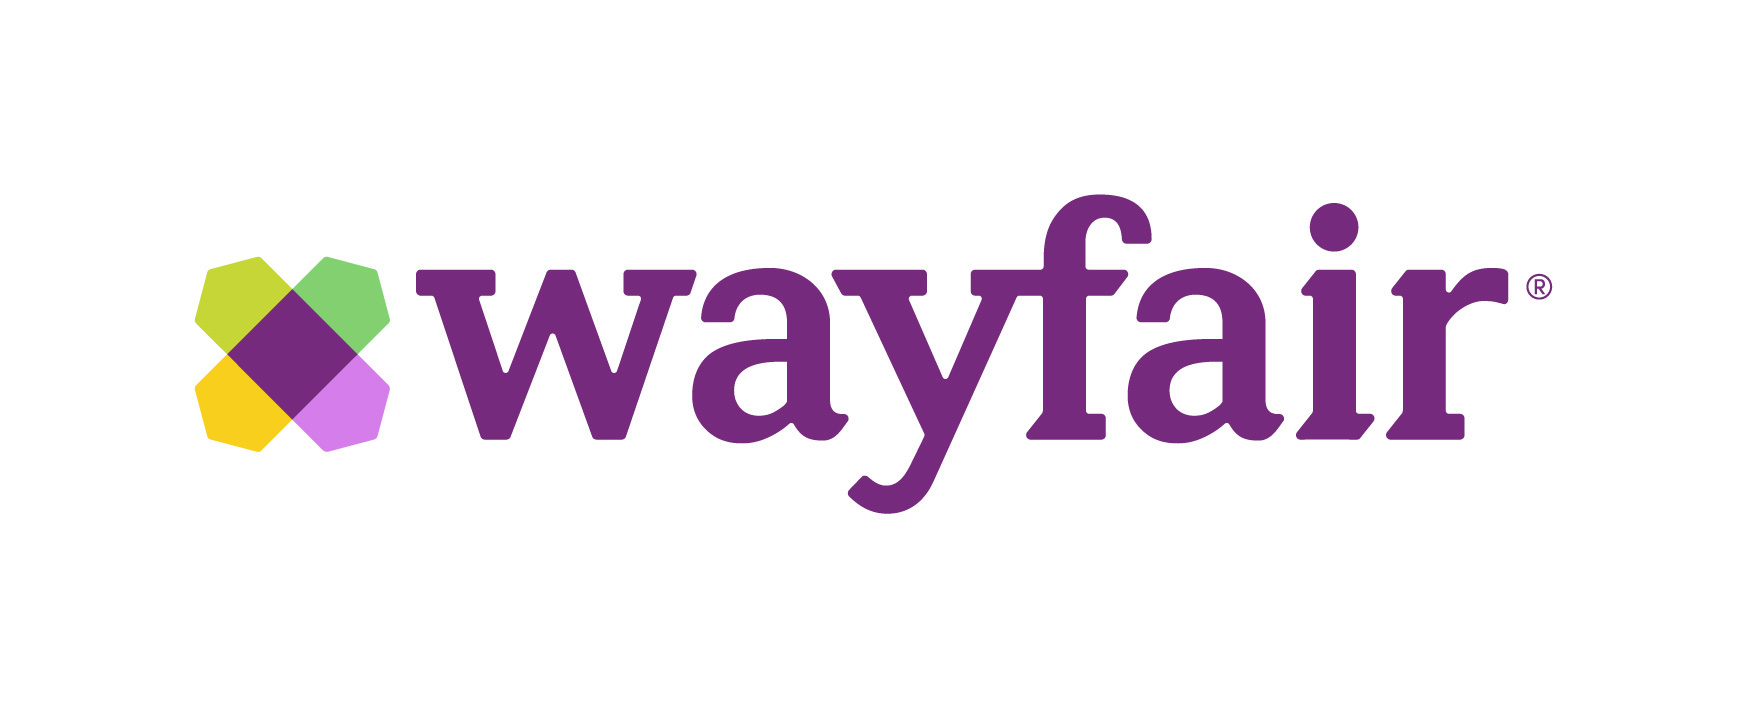 Wayfair Canada Promo Codes Wayfair (dhow4ev6xyrb.ml) is where you'll find tons of furniture, home wares, decor and more. The site stocks items from over 7, suppliers, so they have something to suit every style and budget.